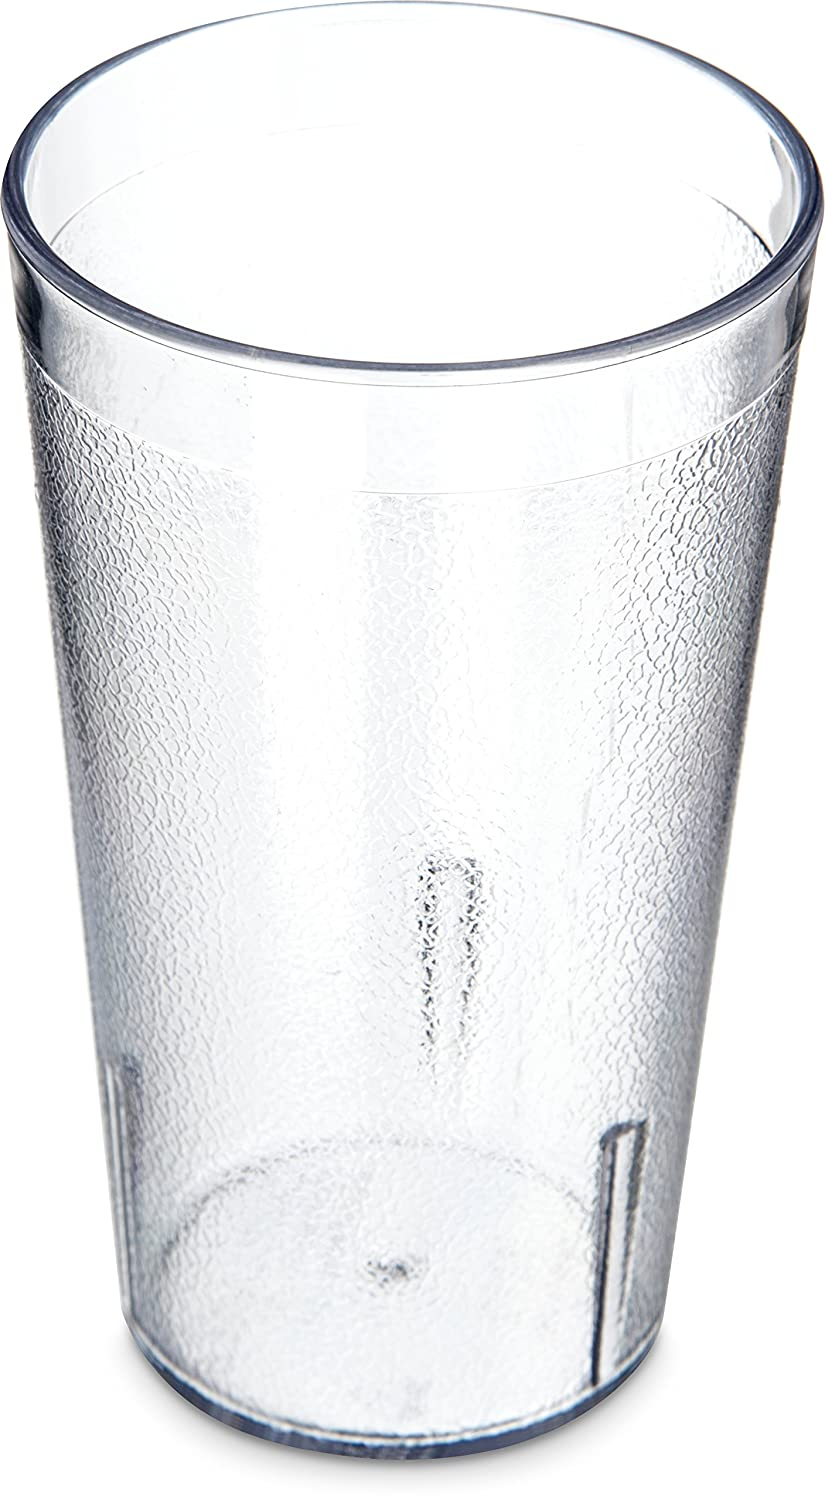 Carlisle 5212-8107 BPA Free Plastic Stackable Tumbler, 12 oz., Clear (Pack of 6)